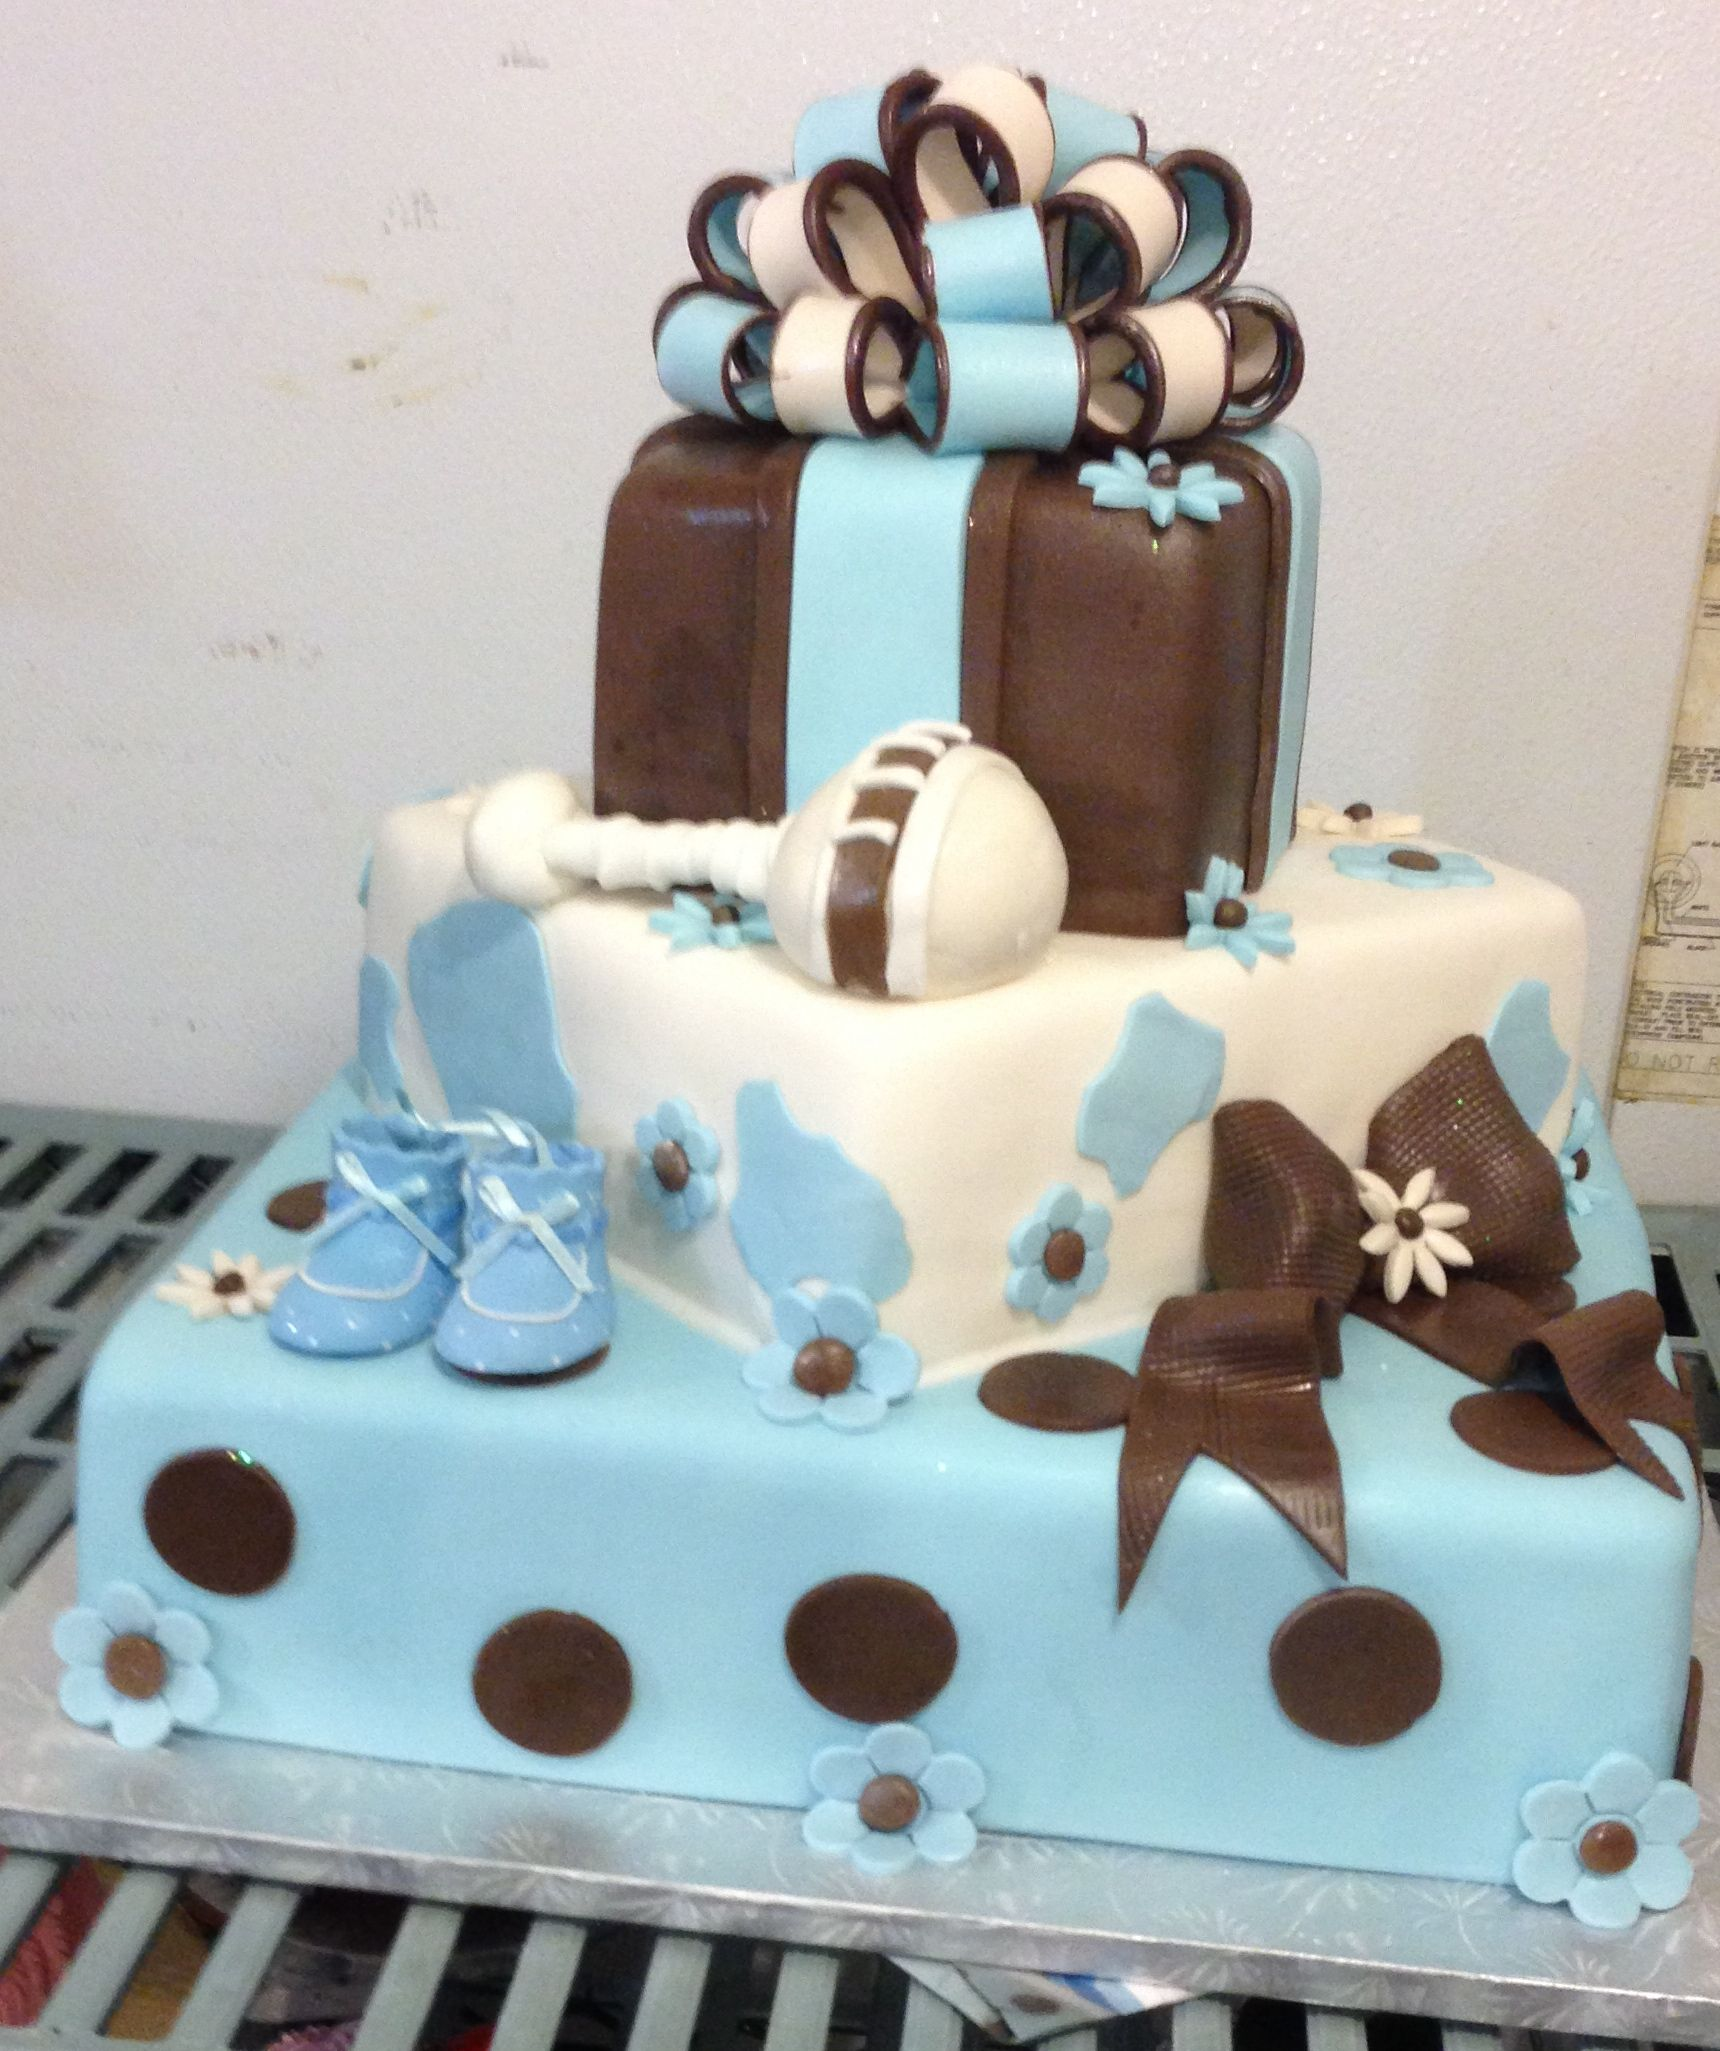 Albertsons Cakes Prices Designs and Ordering Process Cakes Prices